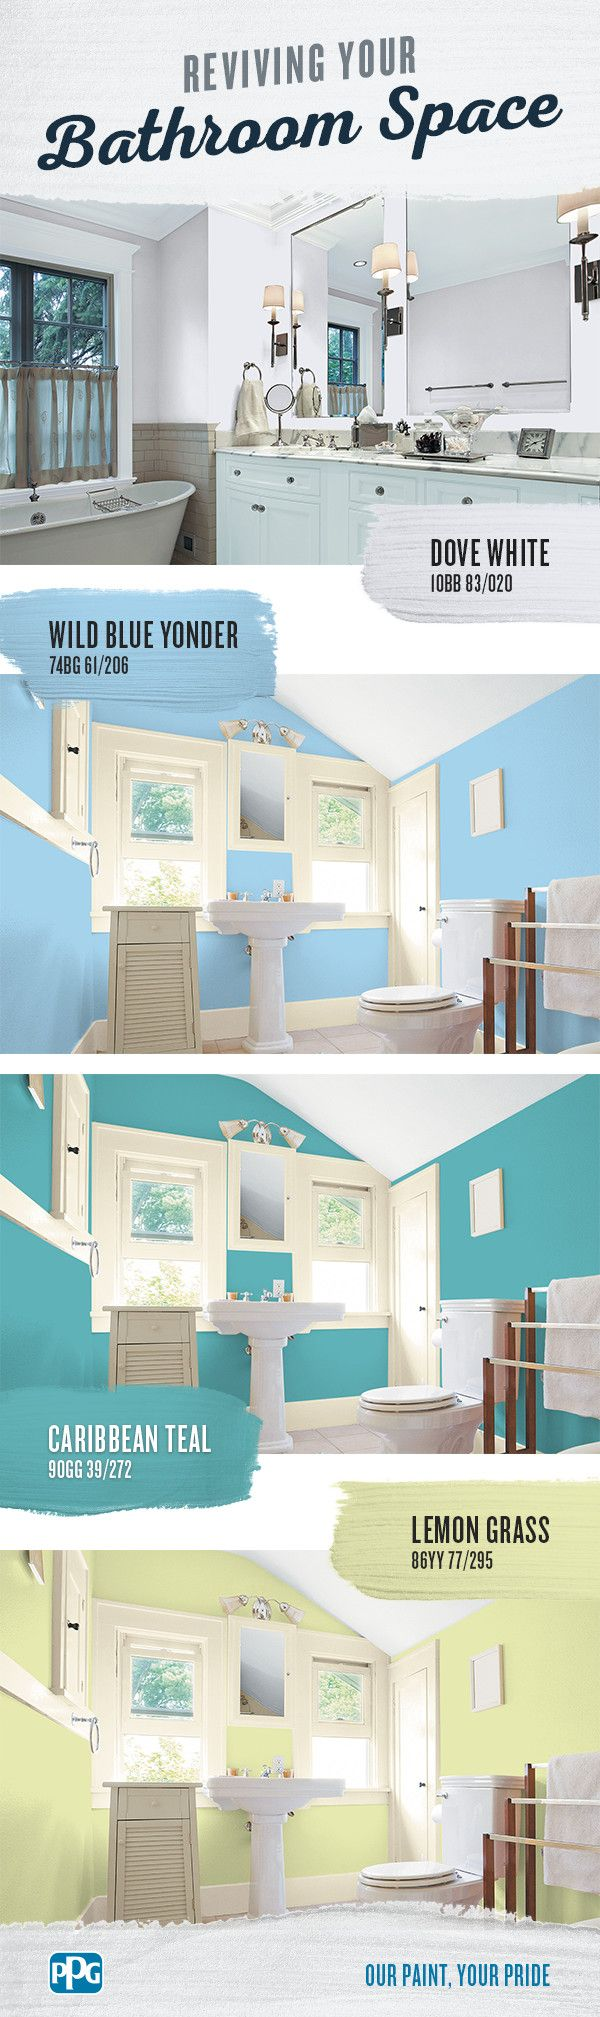 Reviving Your Bathroom Space | If you're looking to freshen your bathroom with a new paint job, the sheer number of color options can be overwhelming. Before you get frustrated with your search, consider these colors for a space you'll love for years.